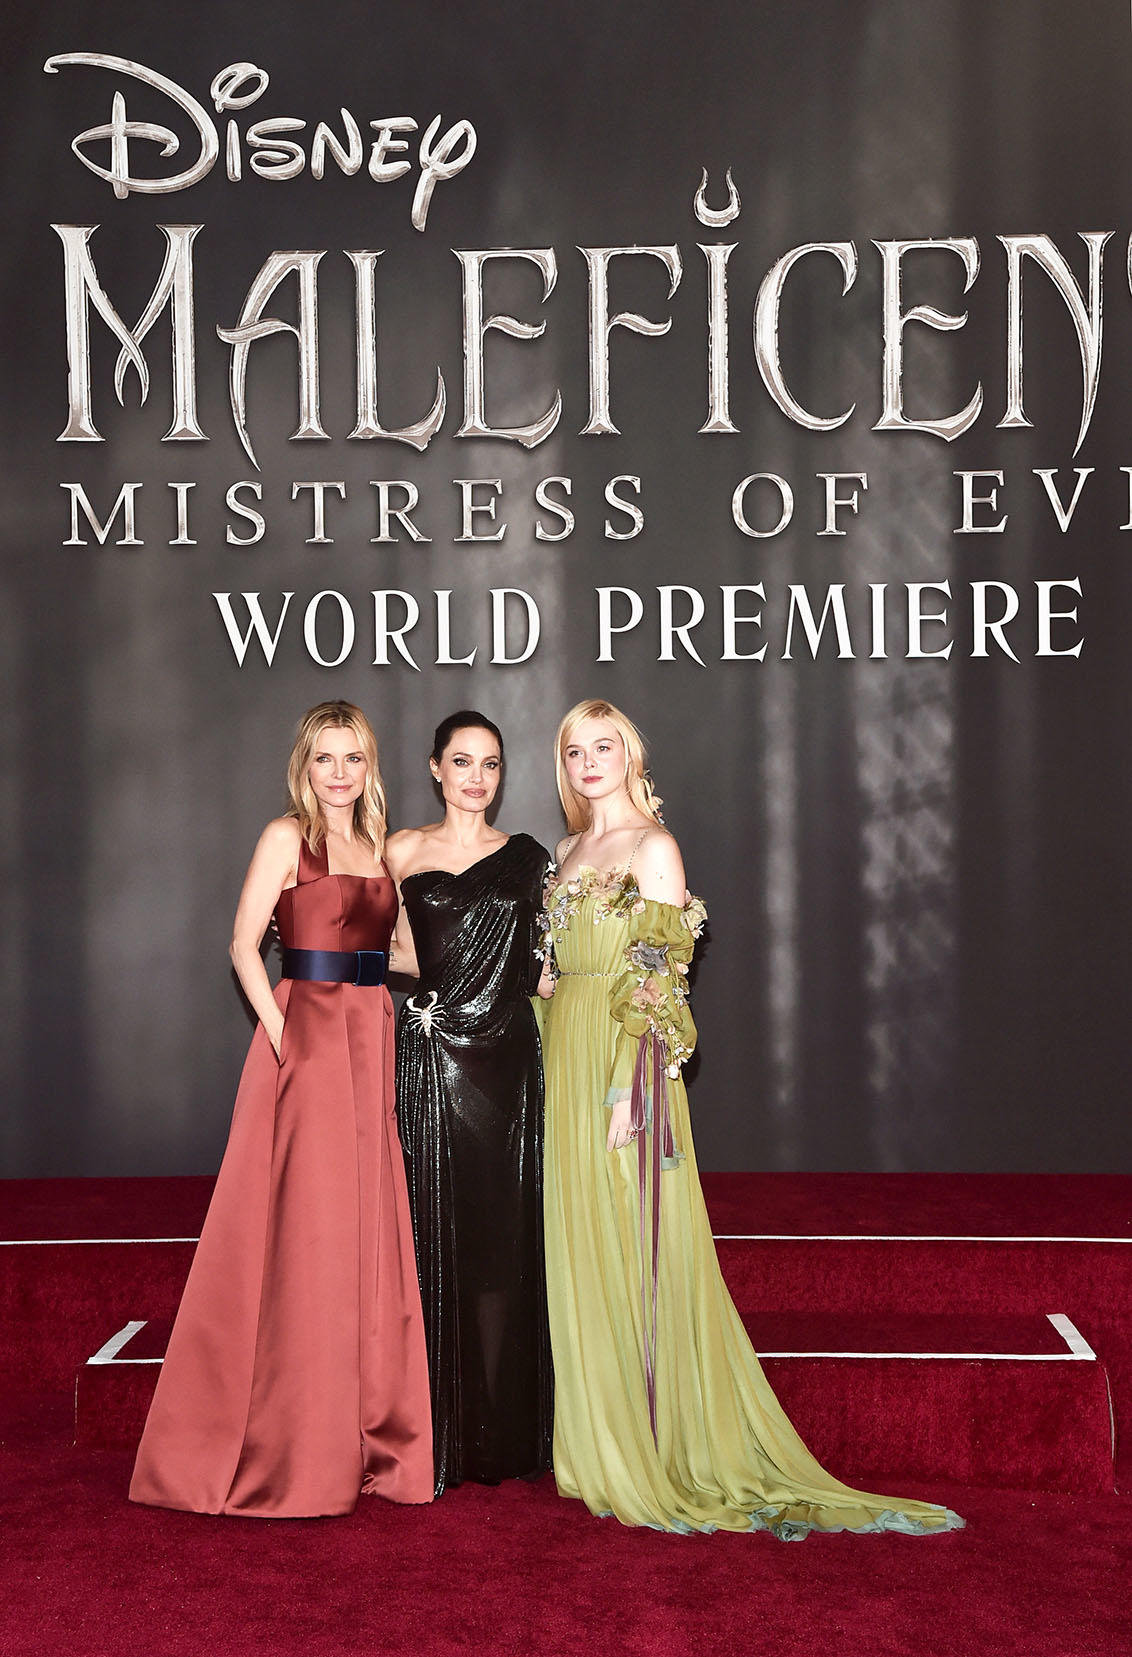 Maleficent Mistress Of Evil Premiere Fandango